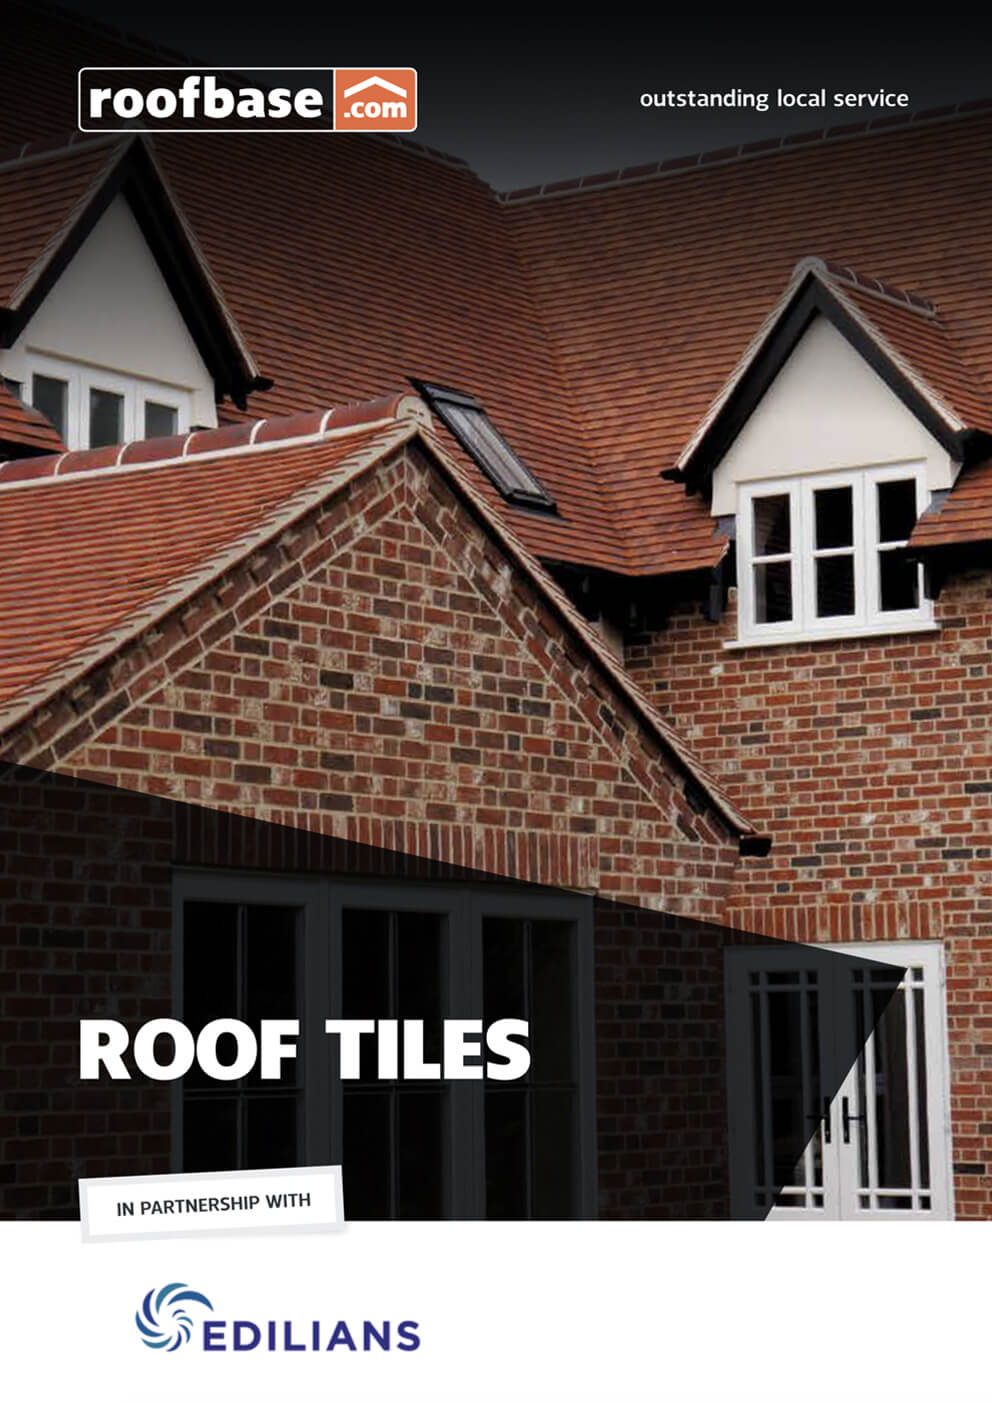 https://roofbase.com/wp-content/uploads/2019/02/edilians-brochure-front-1.jpg